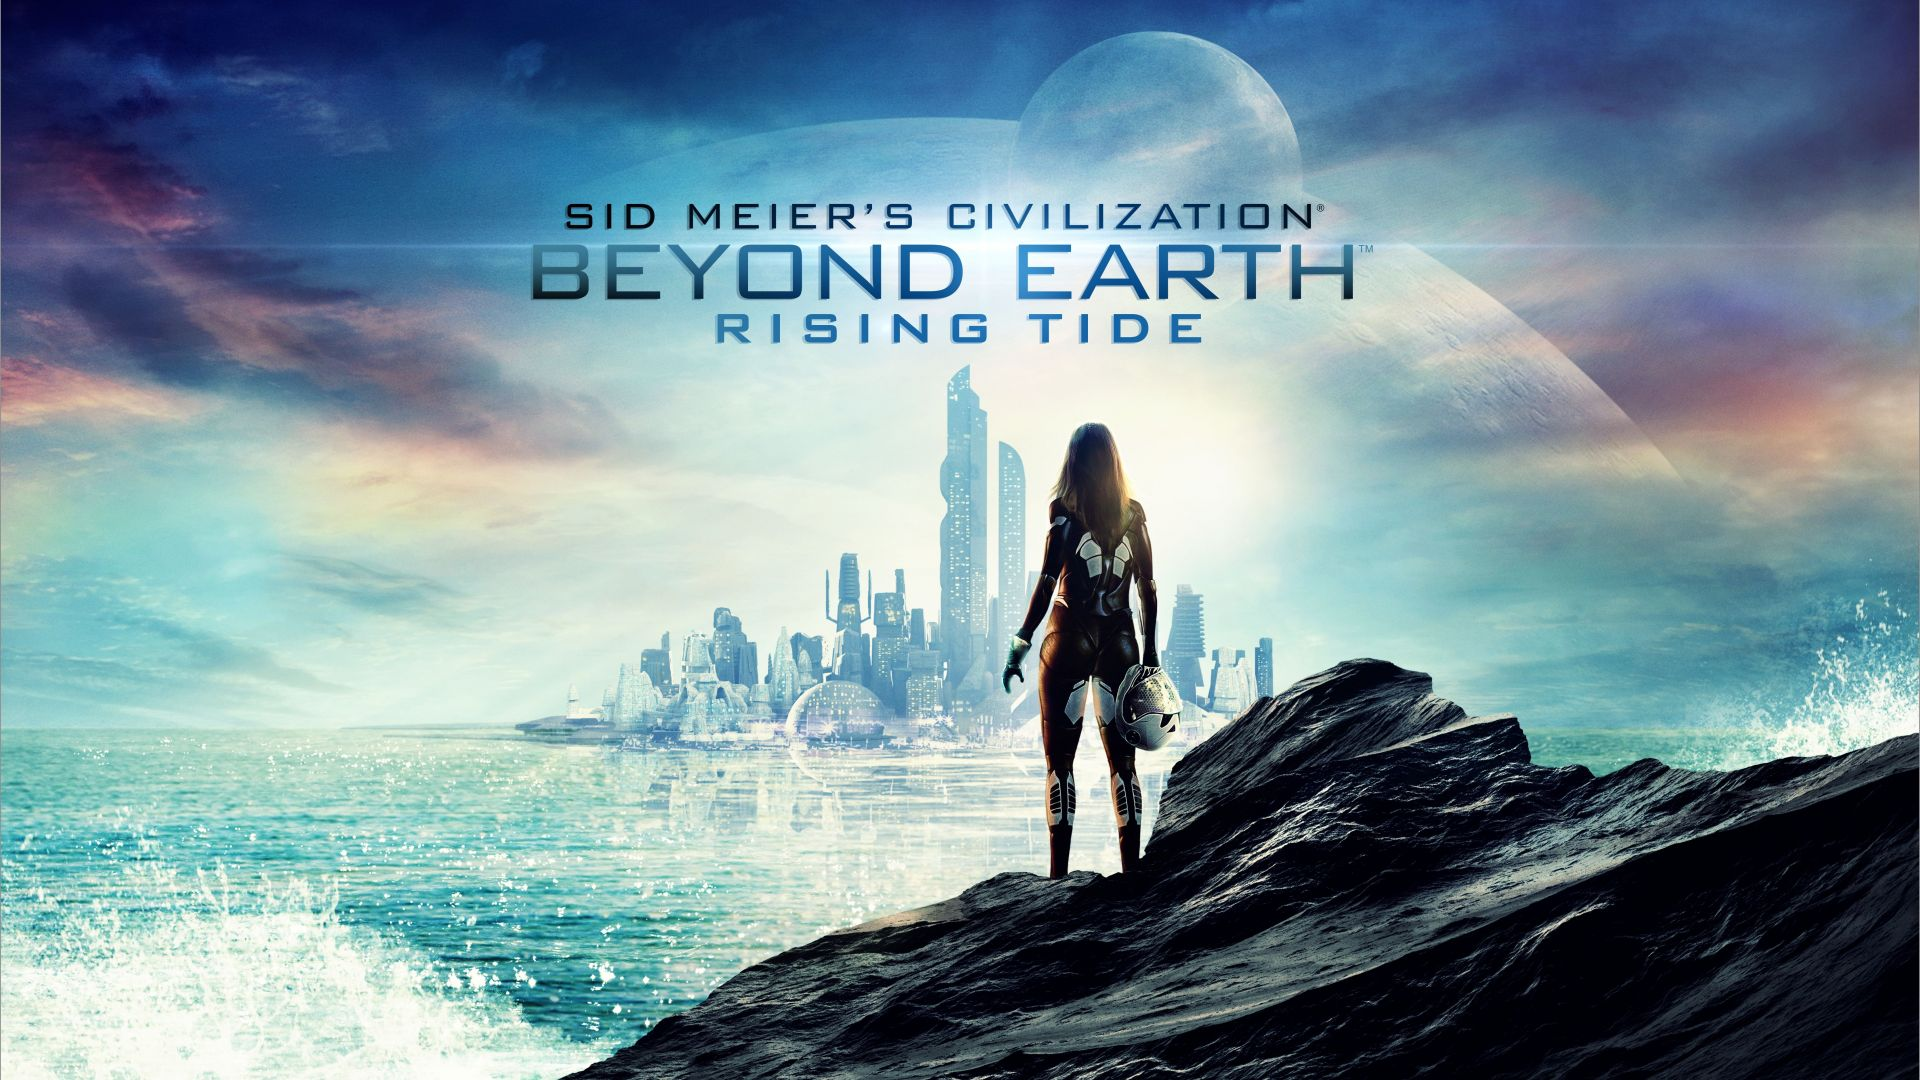 Sid Meier's Civilization: Beyond Earth — Rising Tide, Best Games 2015, game, sci-fi, PC (horizontal)